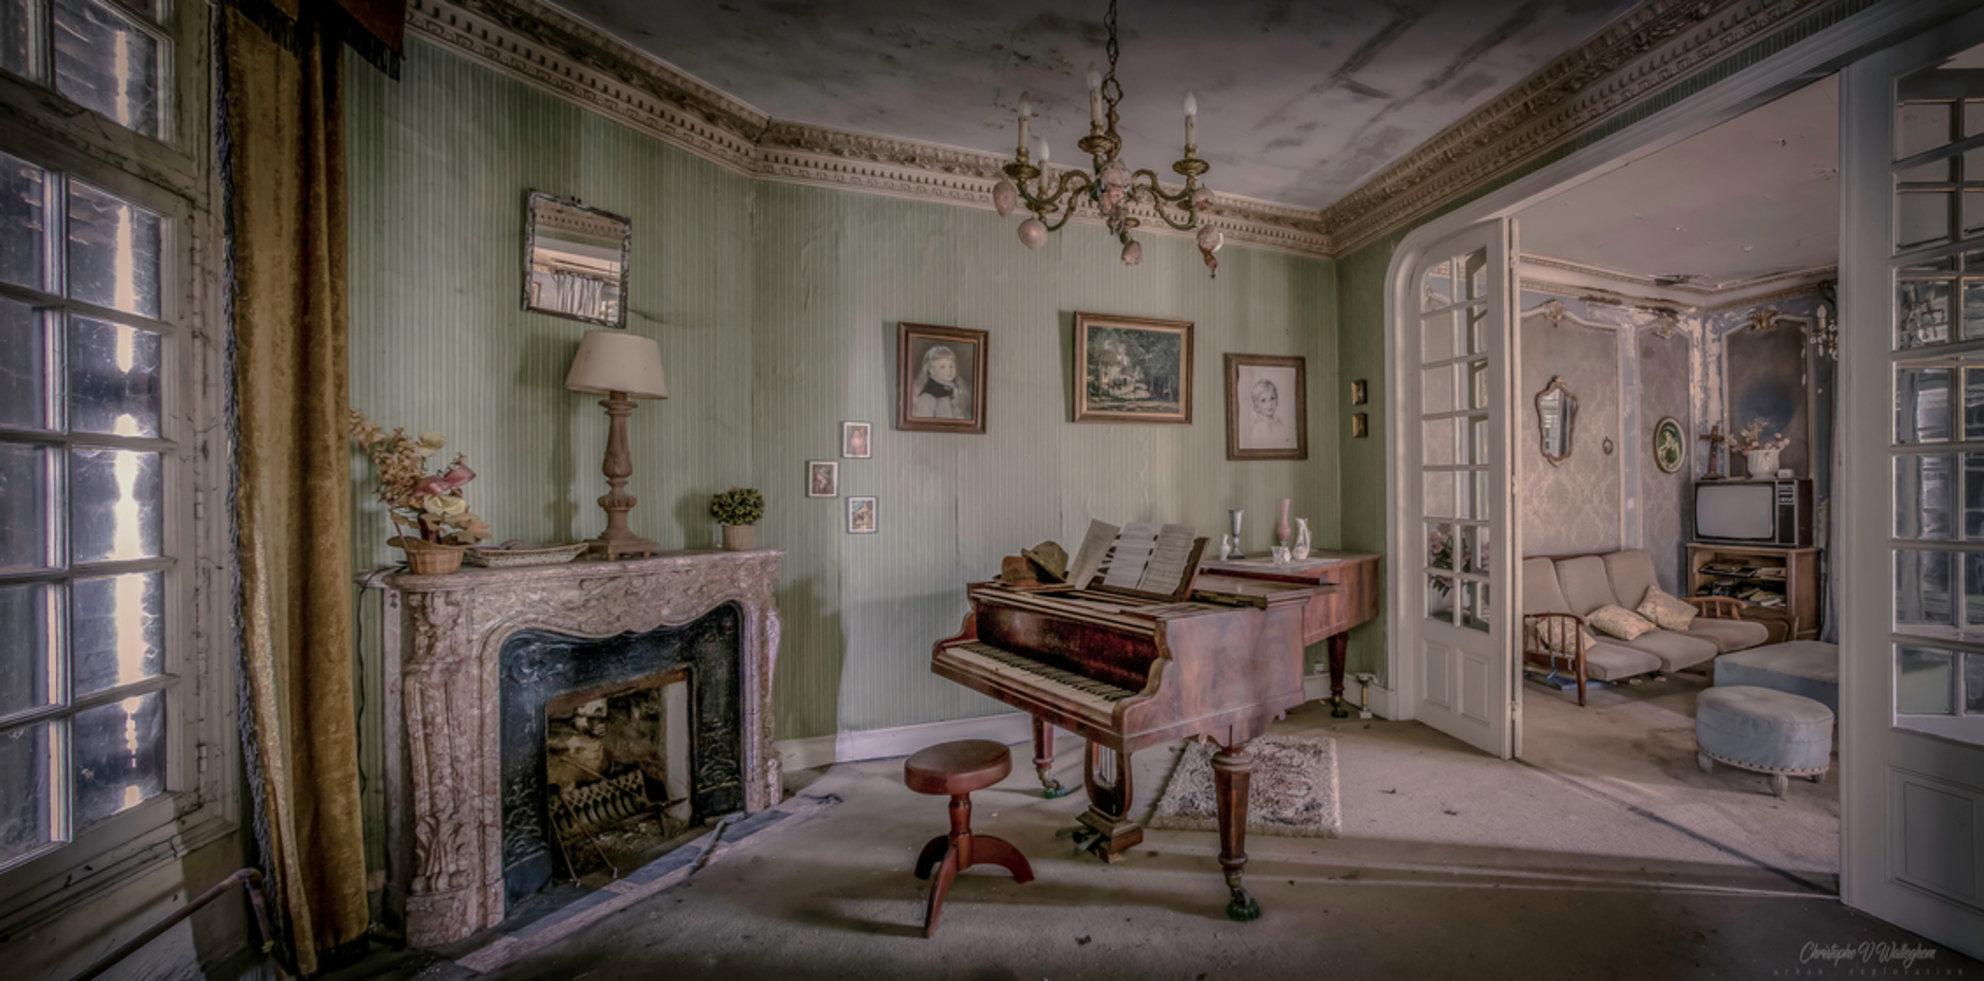 huis - - - foto door christophe0410 op 05-11-2017 - deze foto bevat: panorama, licht, bewerkt, schilderij, vintage, bewerking, sfeer, photoshop, hdr, creatief, sprookje, manipulatie, urbex, wallpaper, tonemapping, lightroom, bewerkingsuitdaging, urban exploring